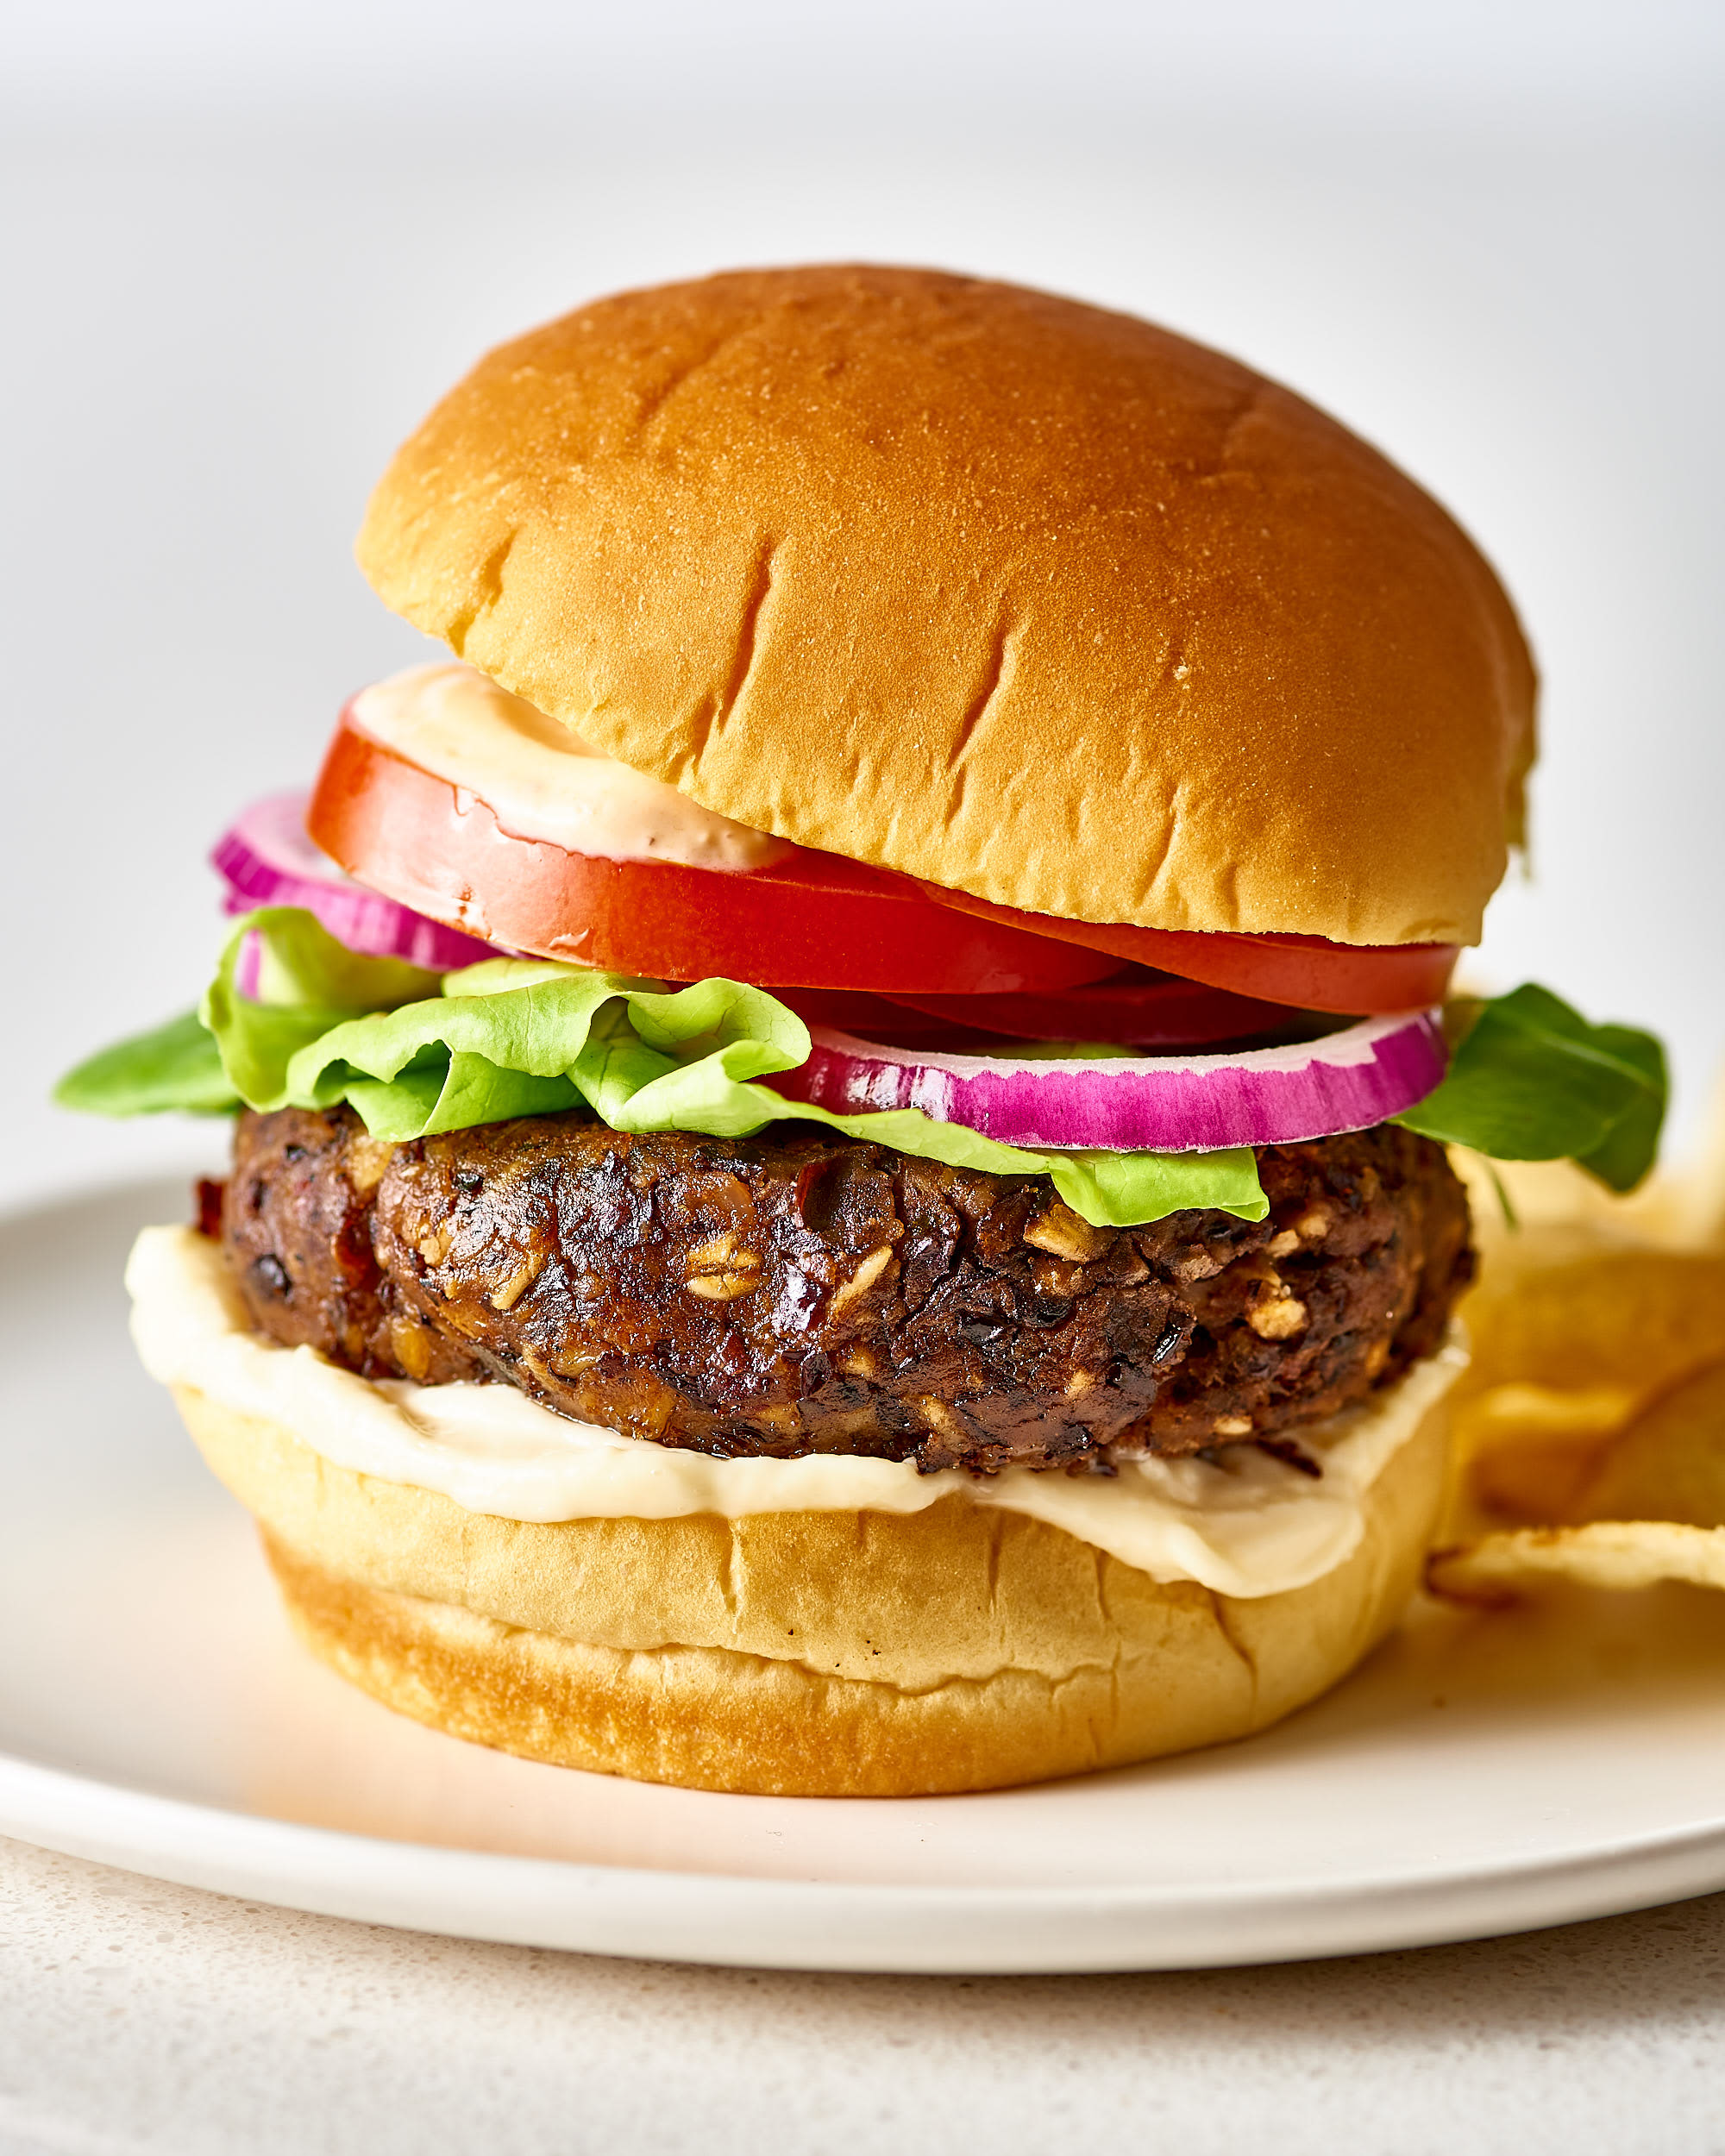 This 1 Ingredient Ensures You'll Never Make a Dry, Crumbly Veggie Burger Again